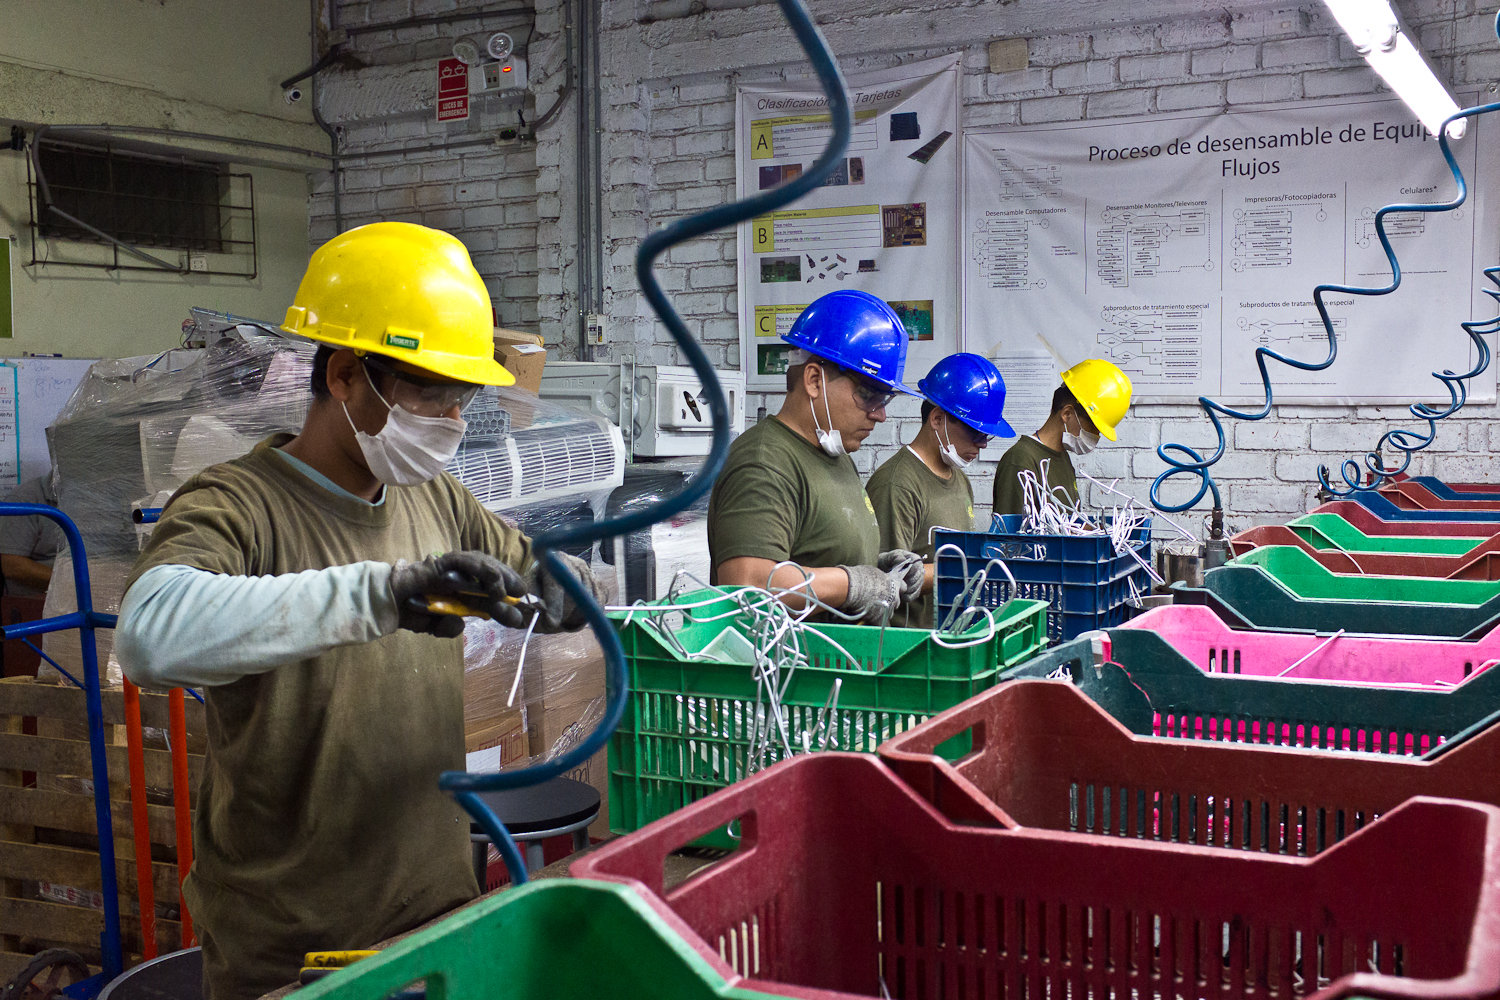 At Peru Green's recycling facility, worker safety is paramount, products are dismantled and sorted at workstations. A small percentage of components are sold to a local metals processor. The majority of components, such as printed circuit boards and copper cables, are sorted and shipped to either the U.S., Europe or China for further processing as Peru Green does not currently have a mechanism to reduce or shred components down to their commodity, or raw material, level.Here, workers use pneumatic tools to dismantle products and wear protective gear. Dismantlers in the informal sector perform the same actions, only with less sophisticated tools.Workers such as these are paid a salary with benefits. Based on interviews with stakeholders, collboration between the informal and formal sectors is currently absent. The rise of the formal electronics recycling sector may threaten the informal sector's access to products and their components for resale, although one recycler noted that there is plenty of material to process in Lima. How can the formal and informal sectors work together so that both sectors of the economy and their relative benefits to society and the environment can thrive?